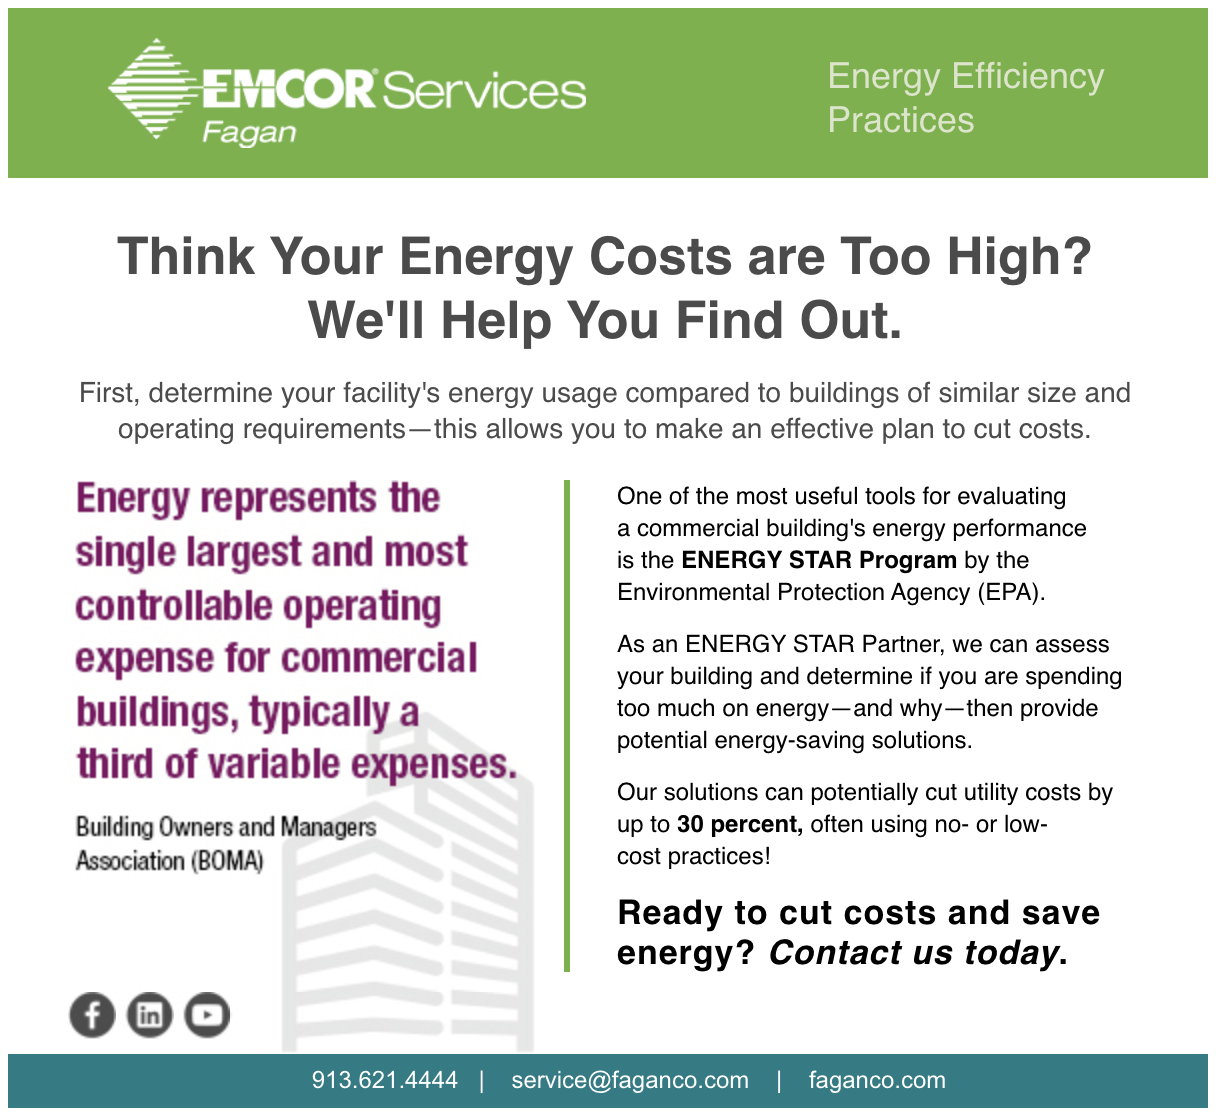 Think Your Energy Costs are Too High? We'll Help You Find Out.